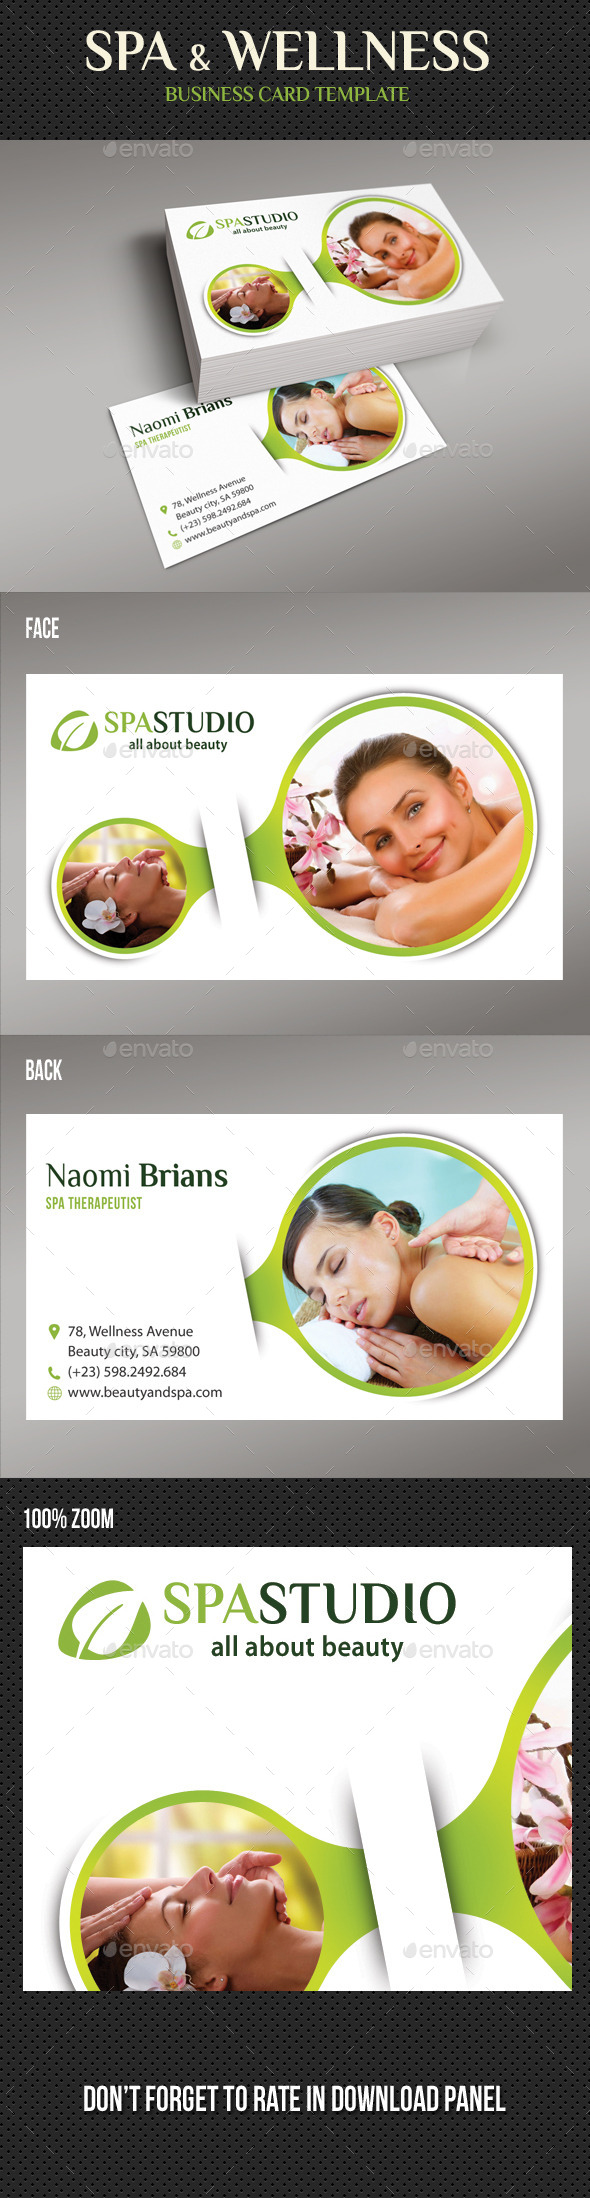 Spa And Beauty Business Card 06 - Industry Specific Business Cards